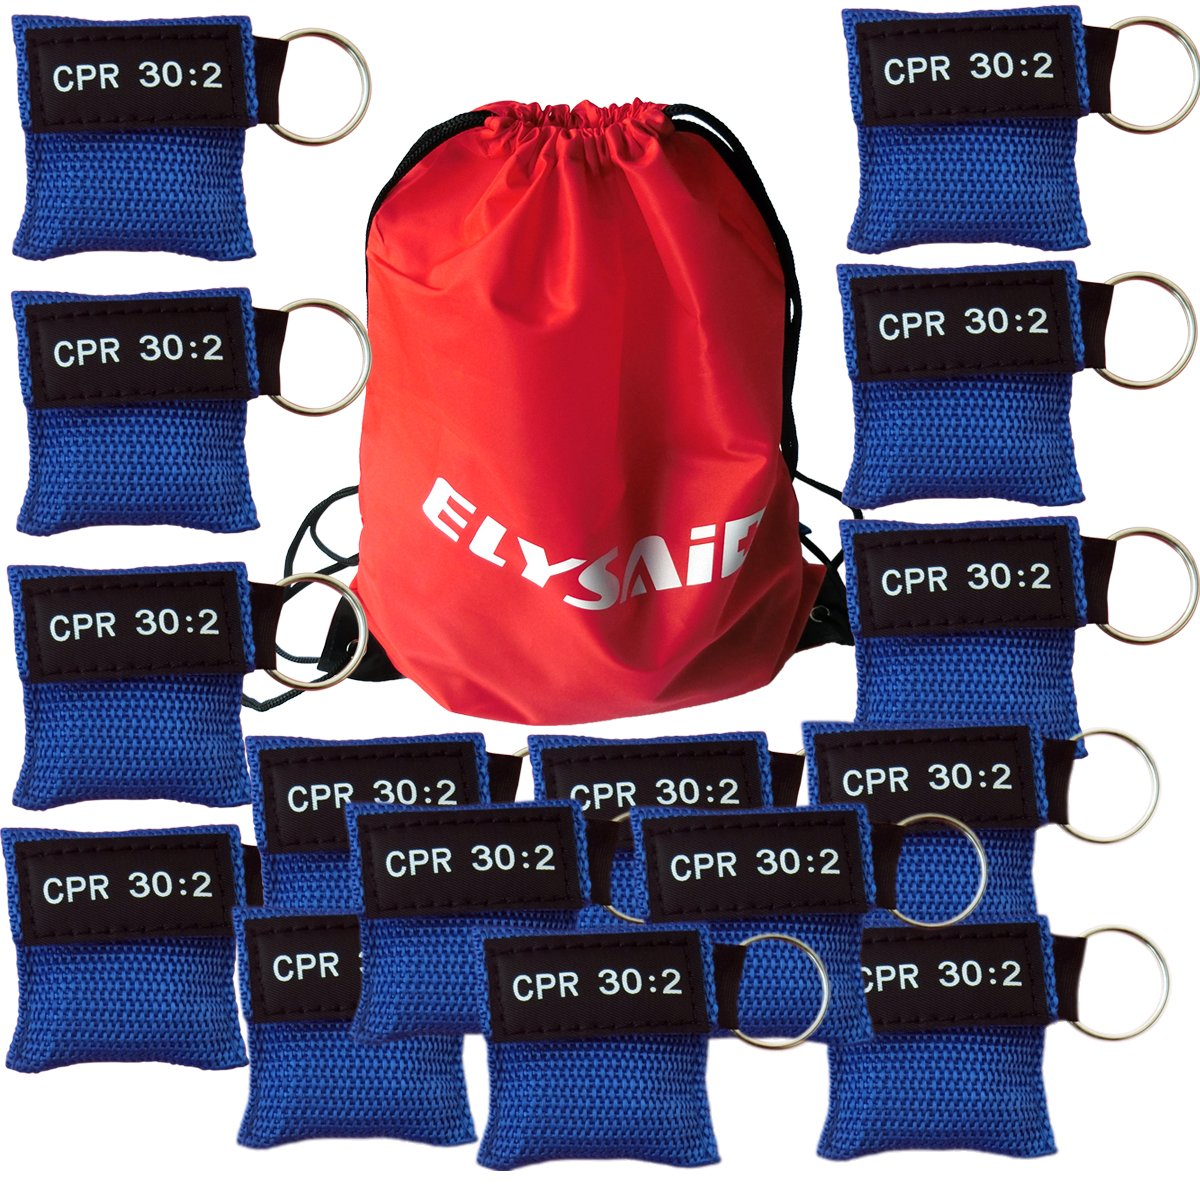 Elysaid 100Pcs/Pack CPR MASK WITH KEYCHAIN CPR FACE SHIELD AED BLUE POUCH CPR 30:2 IN BACK BAG